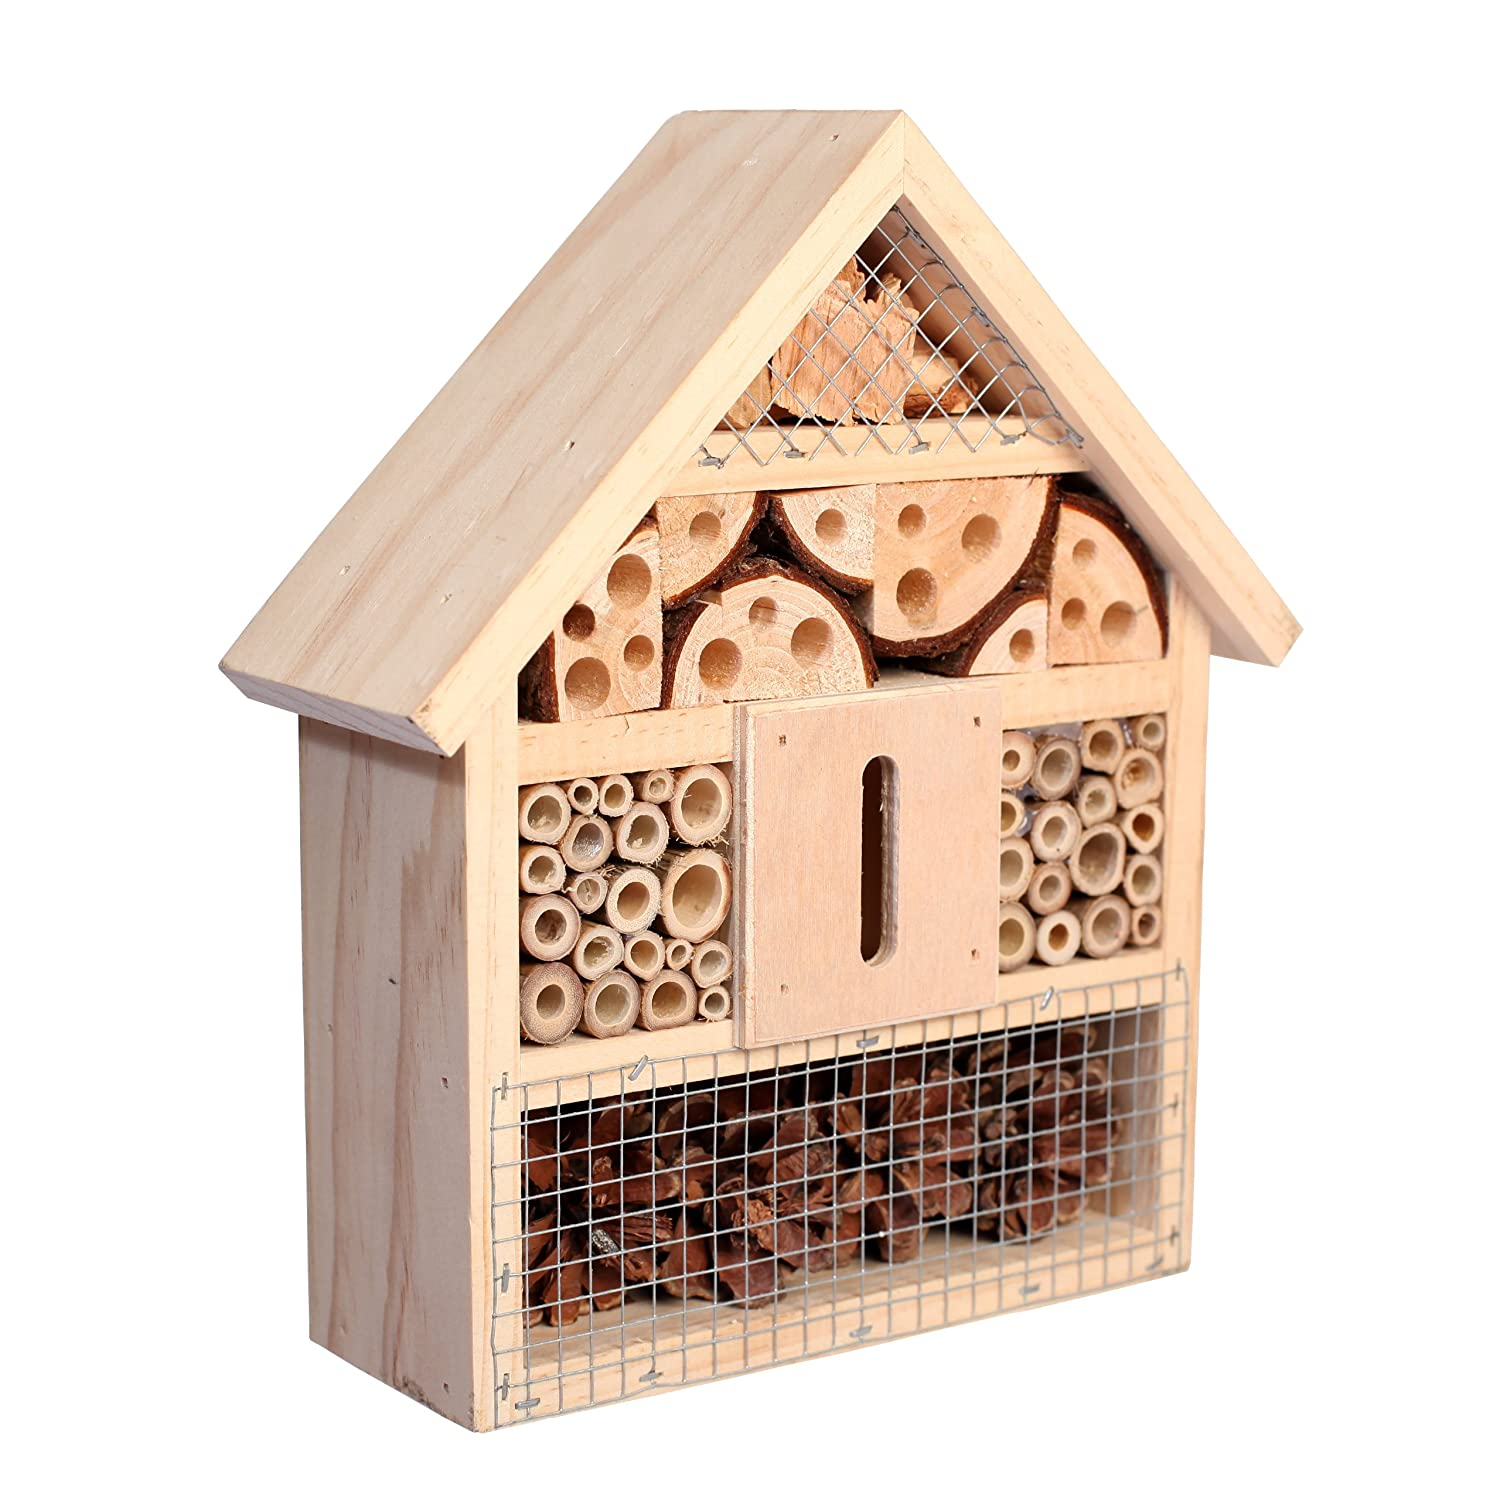 Gardenon Natural Insect Hotel Bee Bug House Hotel